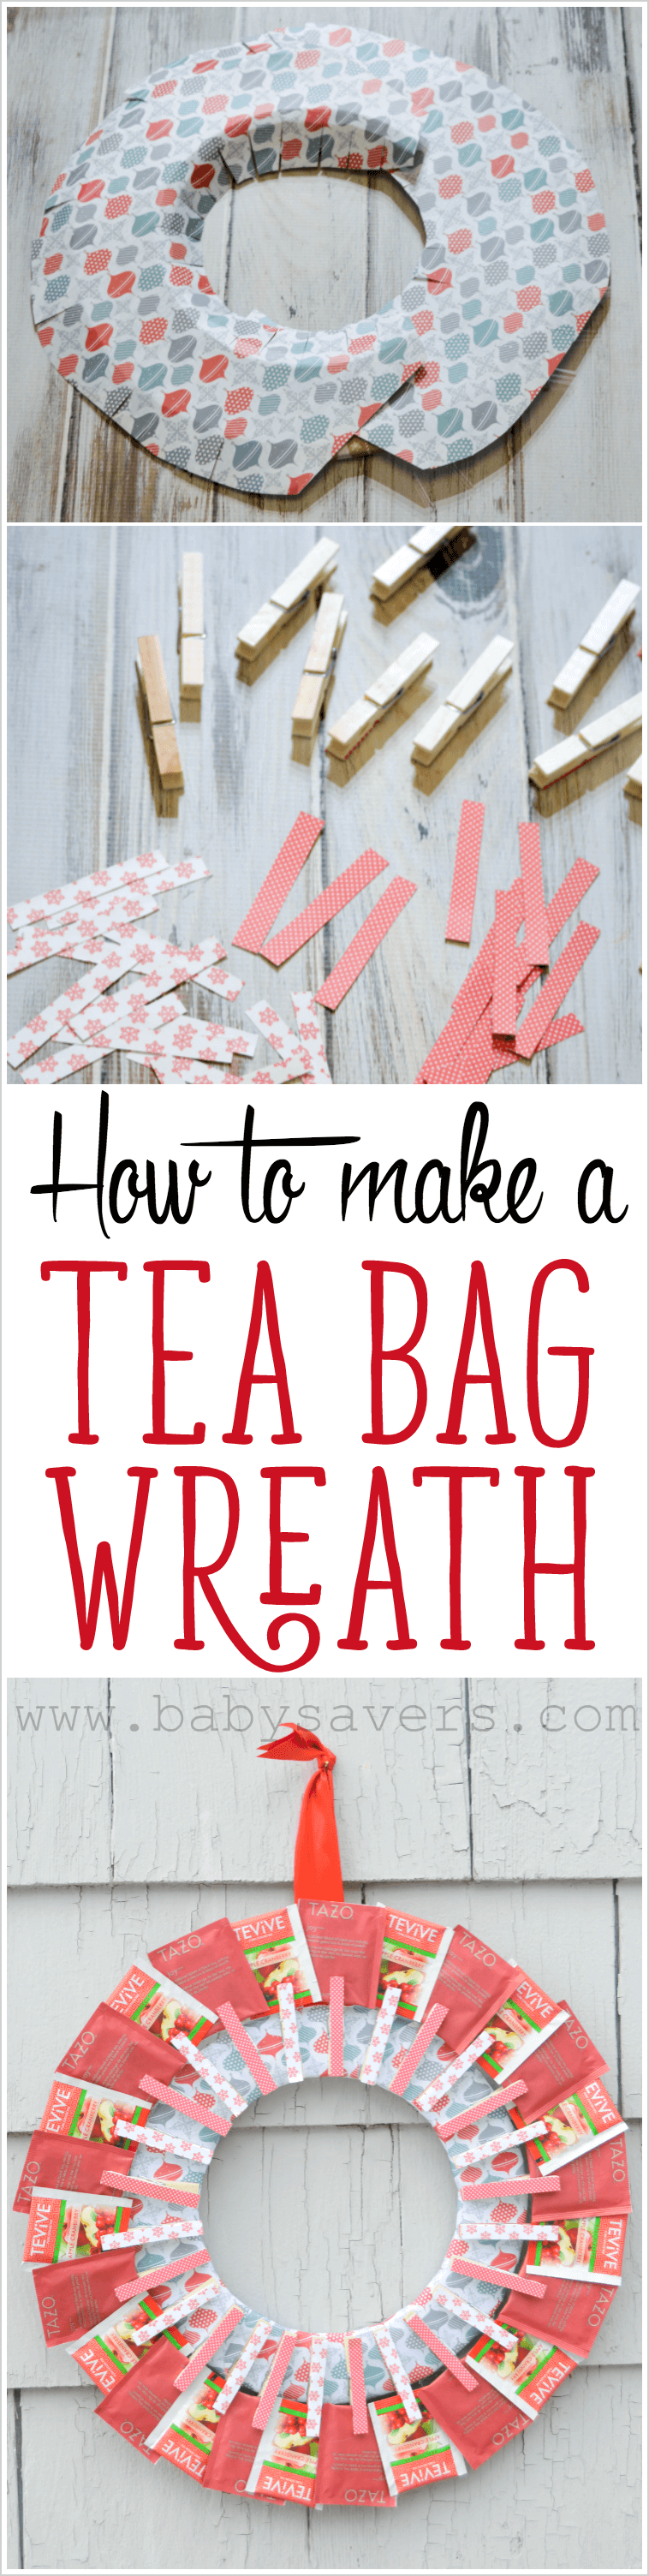 how-to-make-a-tea-bag-wreath